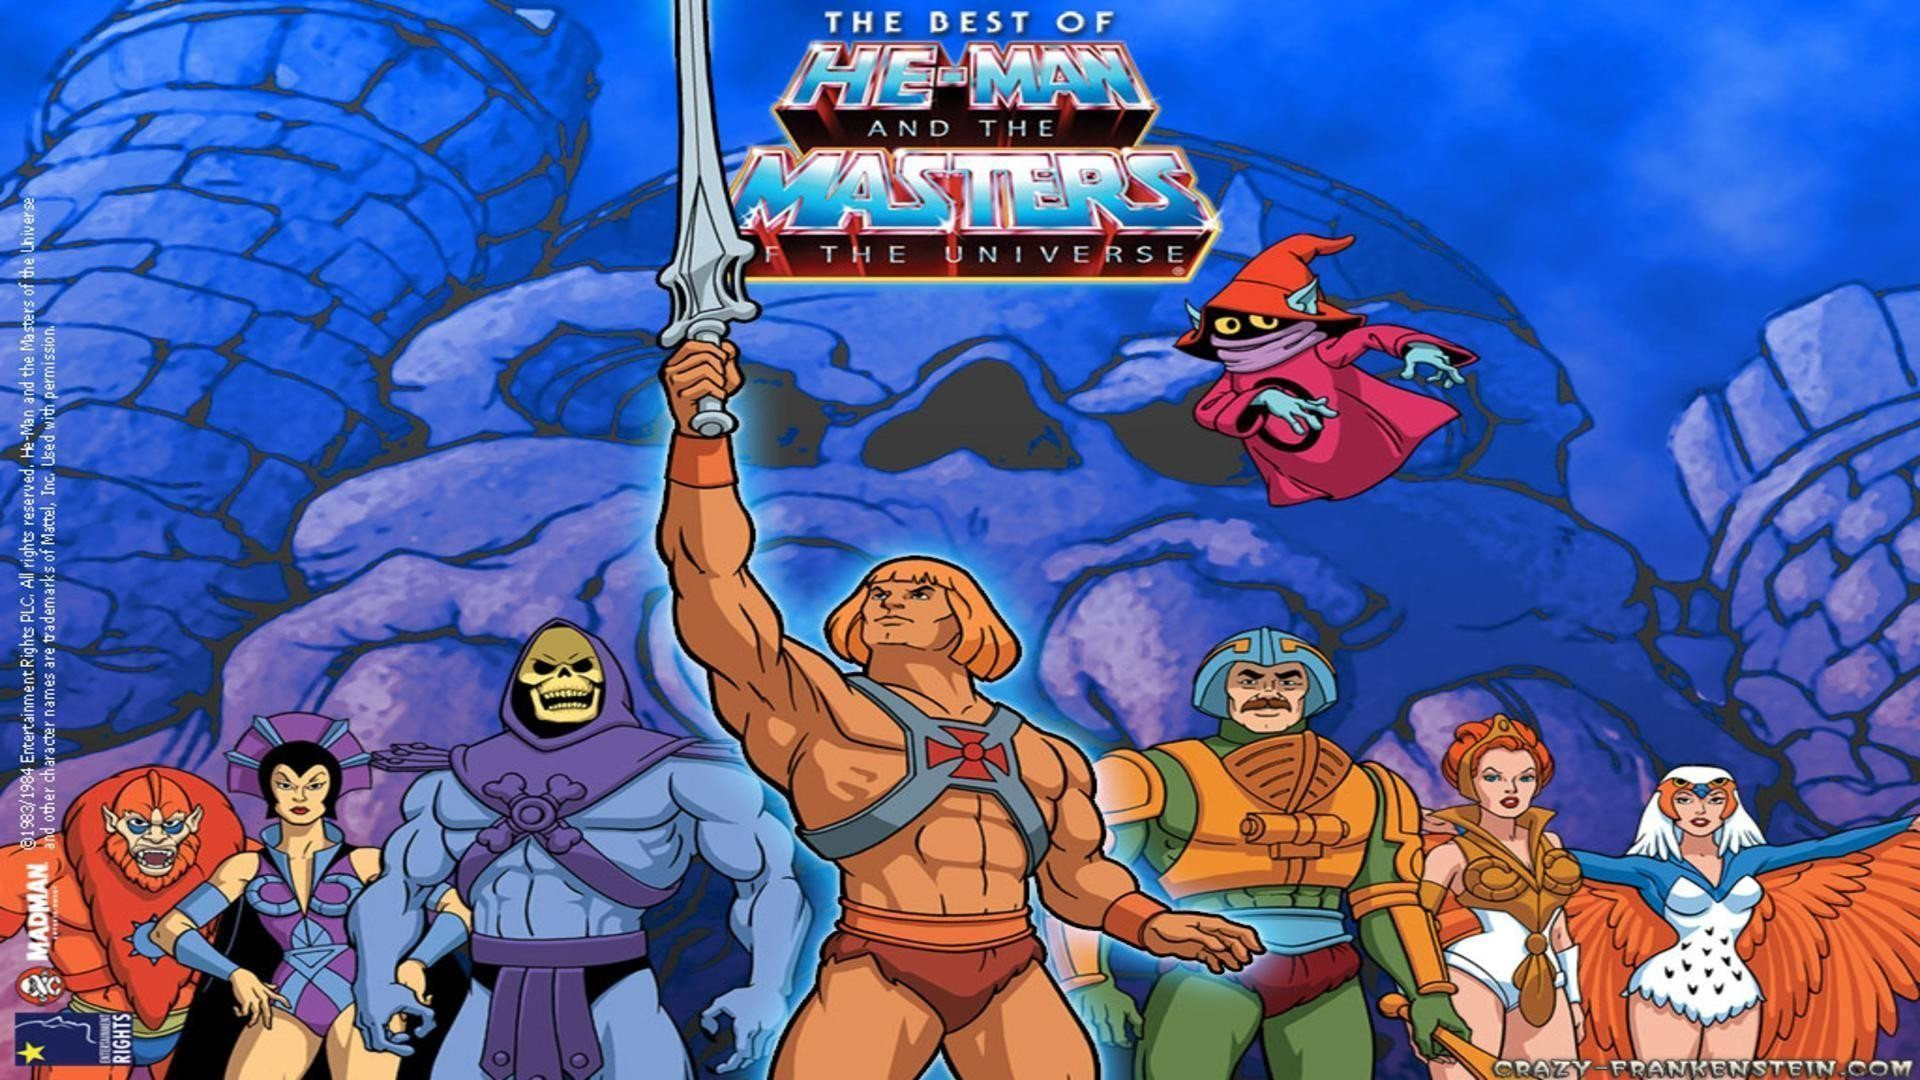 Res: 1920x1080, He man and the masters of cartoon wallpaper free desktop .